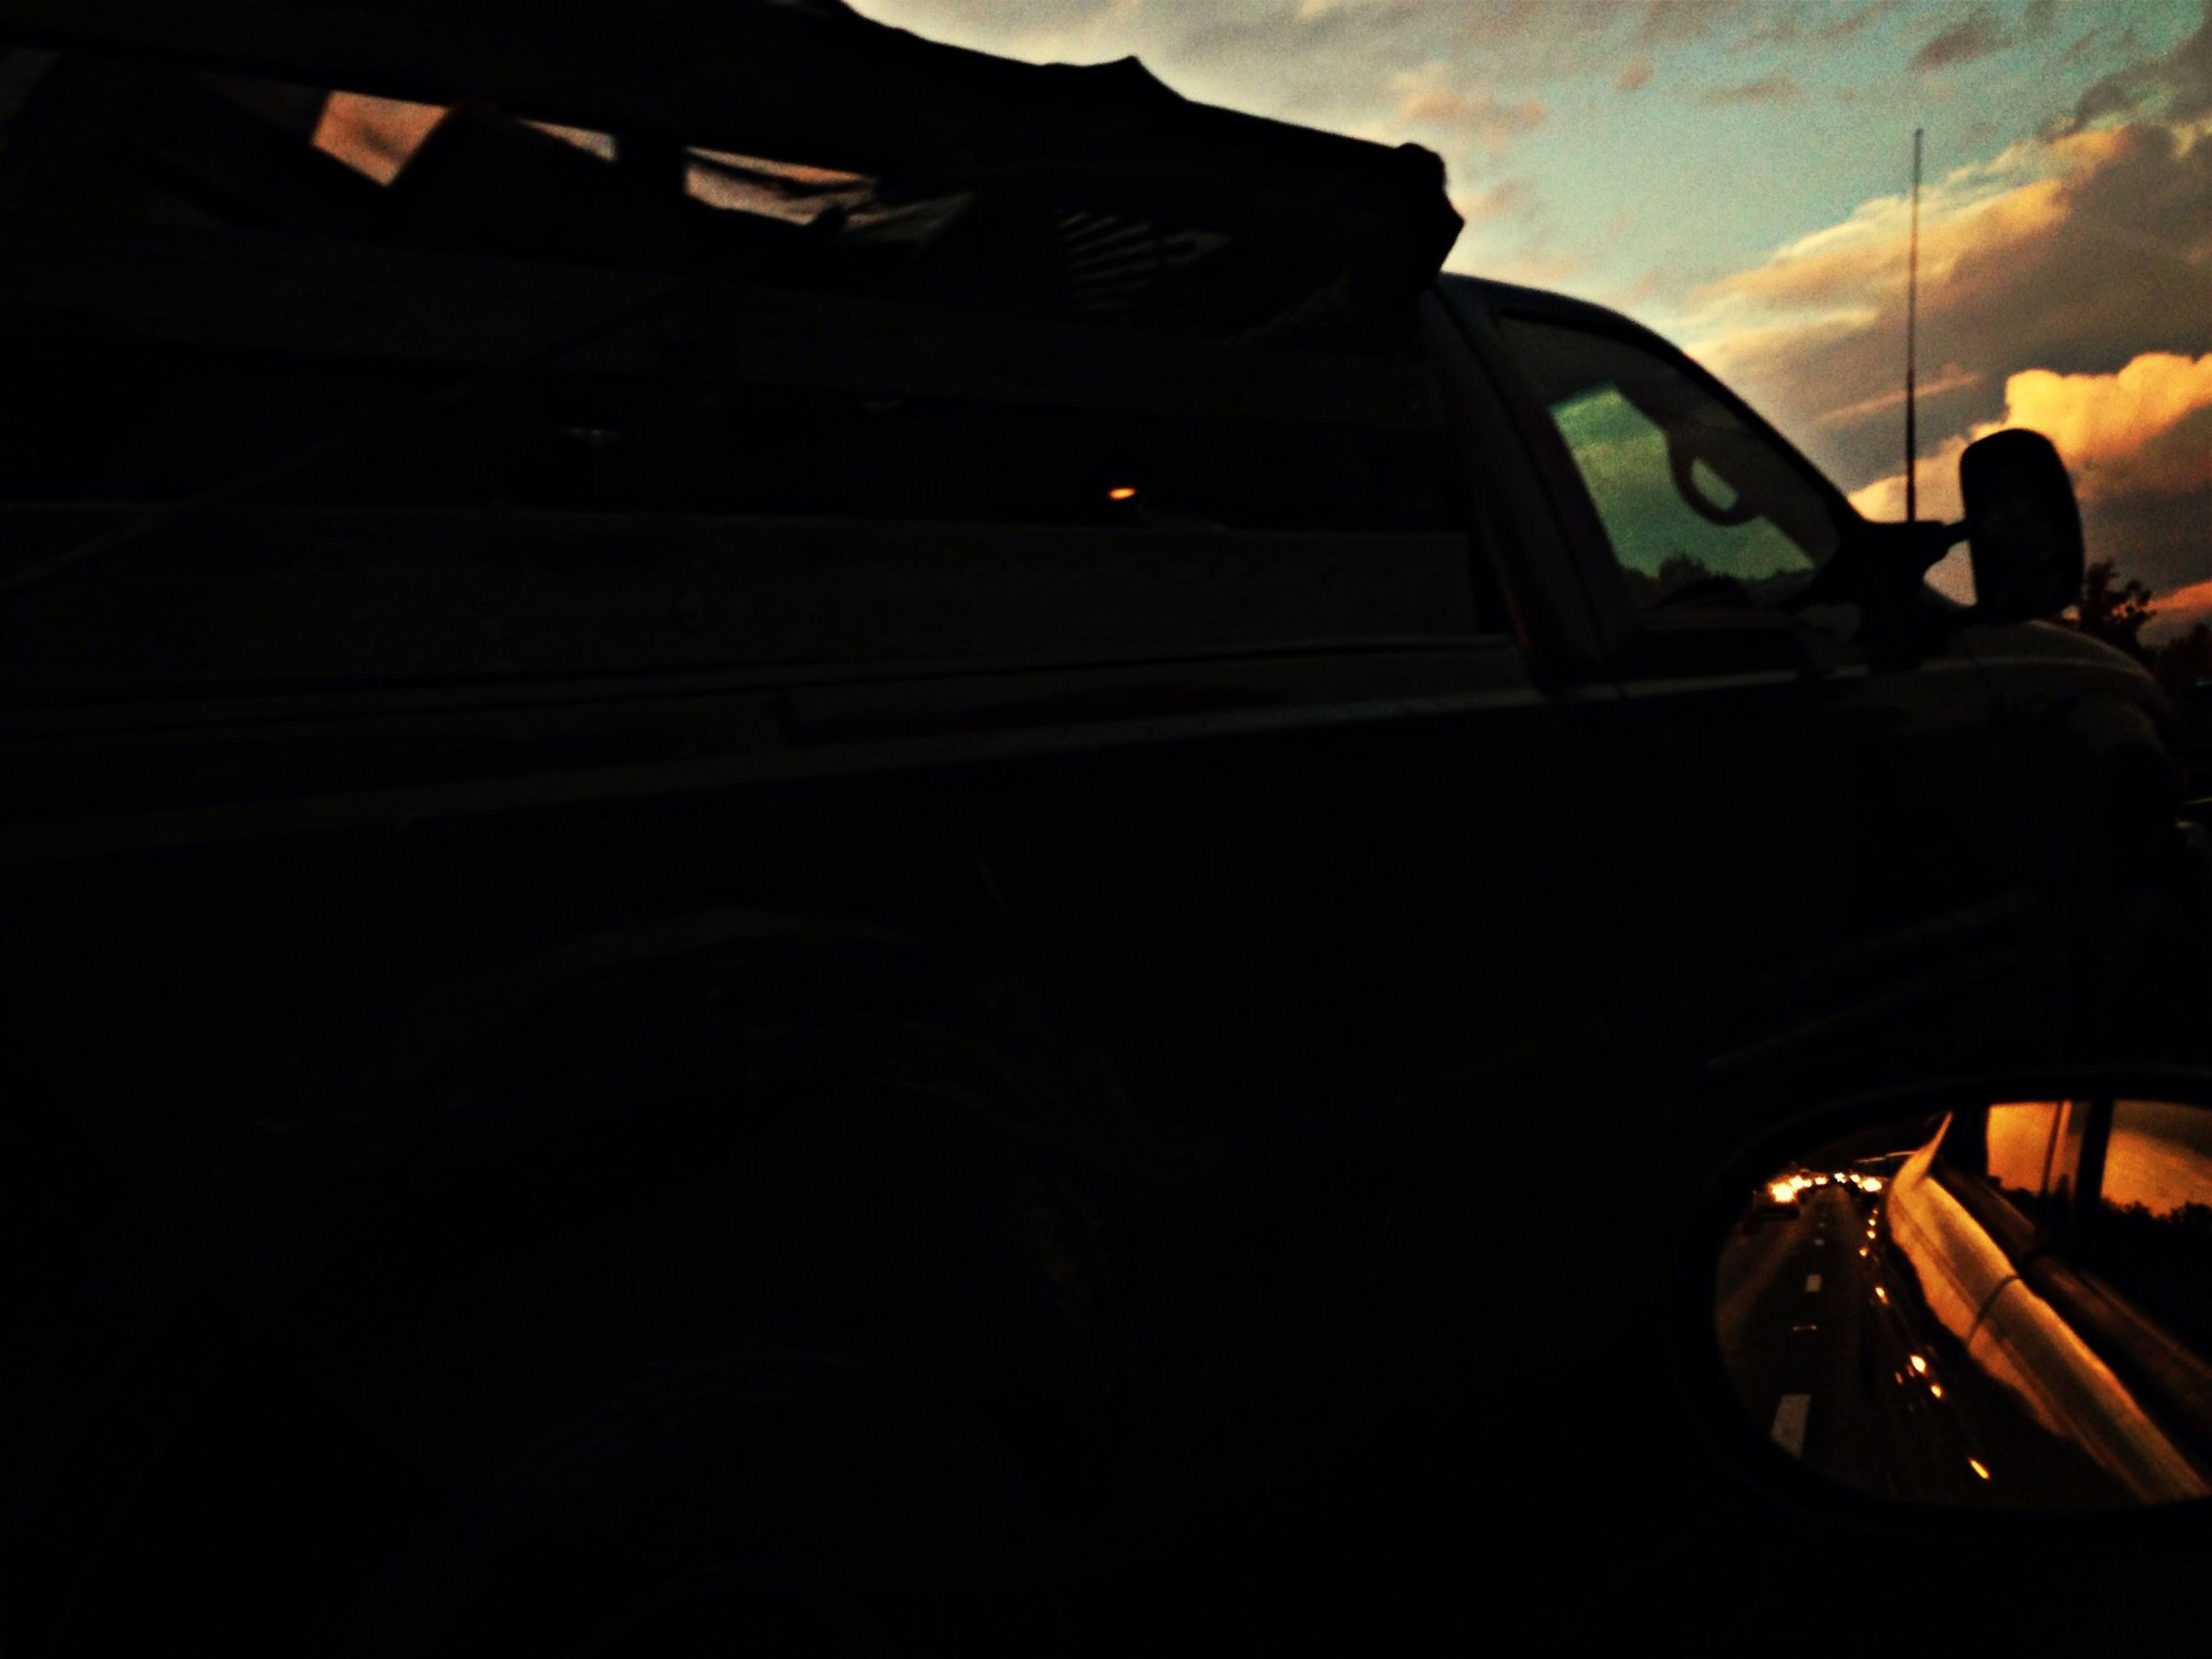 transportation, mode of transport, land vehicle, car, vehicle interior, travel, indoors, part of, car interior, silhouette, public transportation, journey, technology, windshield, one person, dark, cropped, illuminated, close-up, train - vehicle